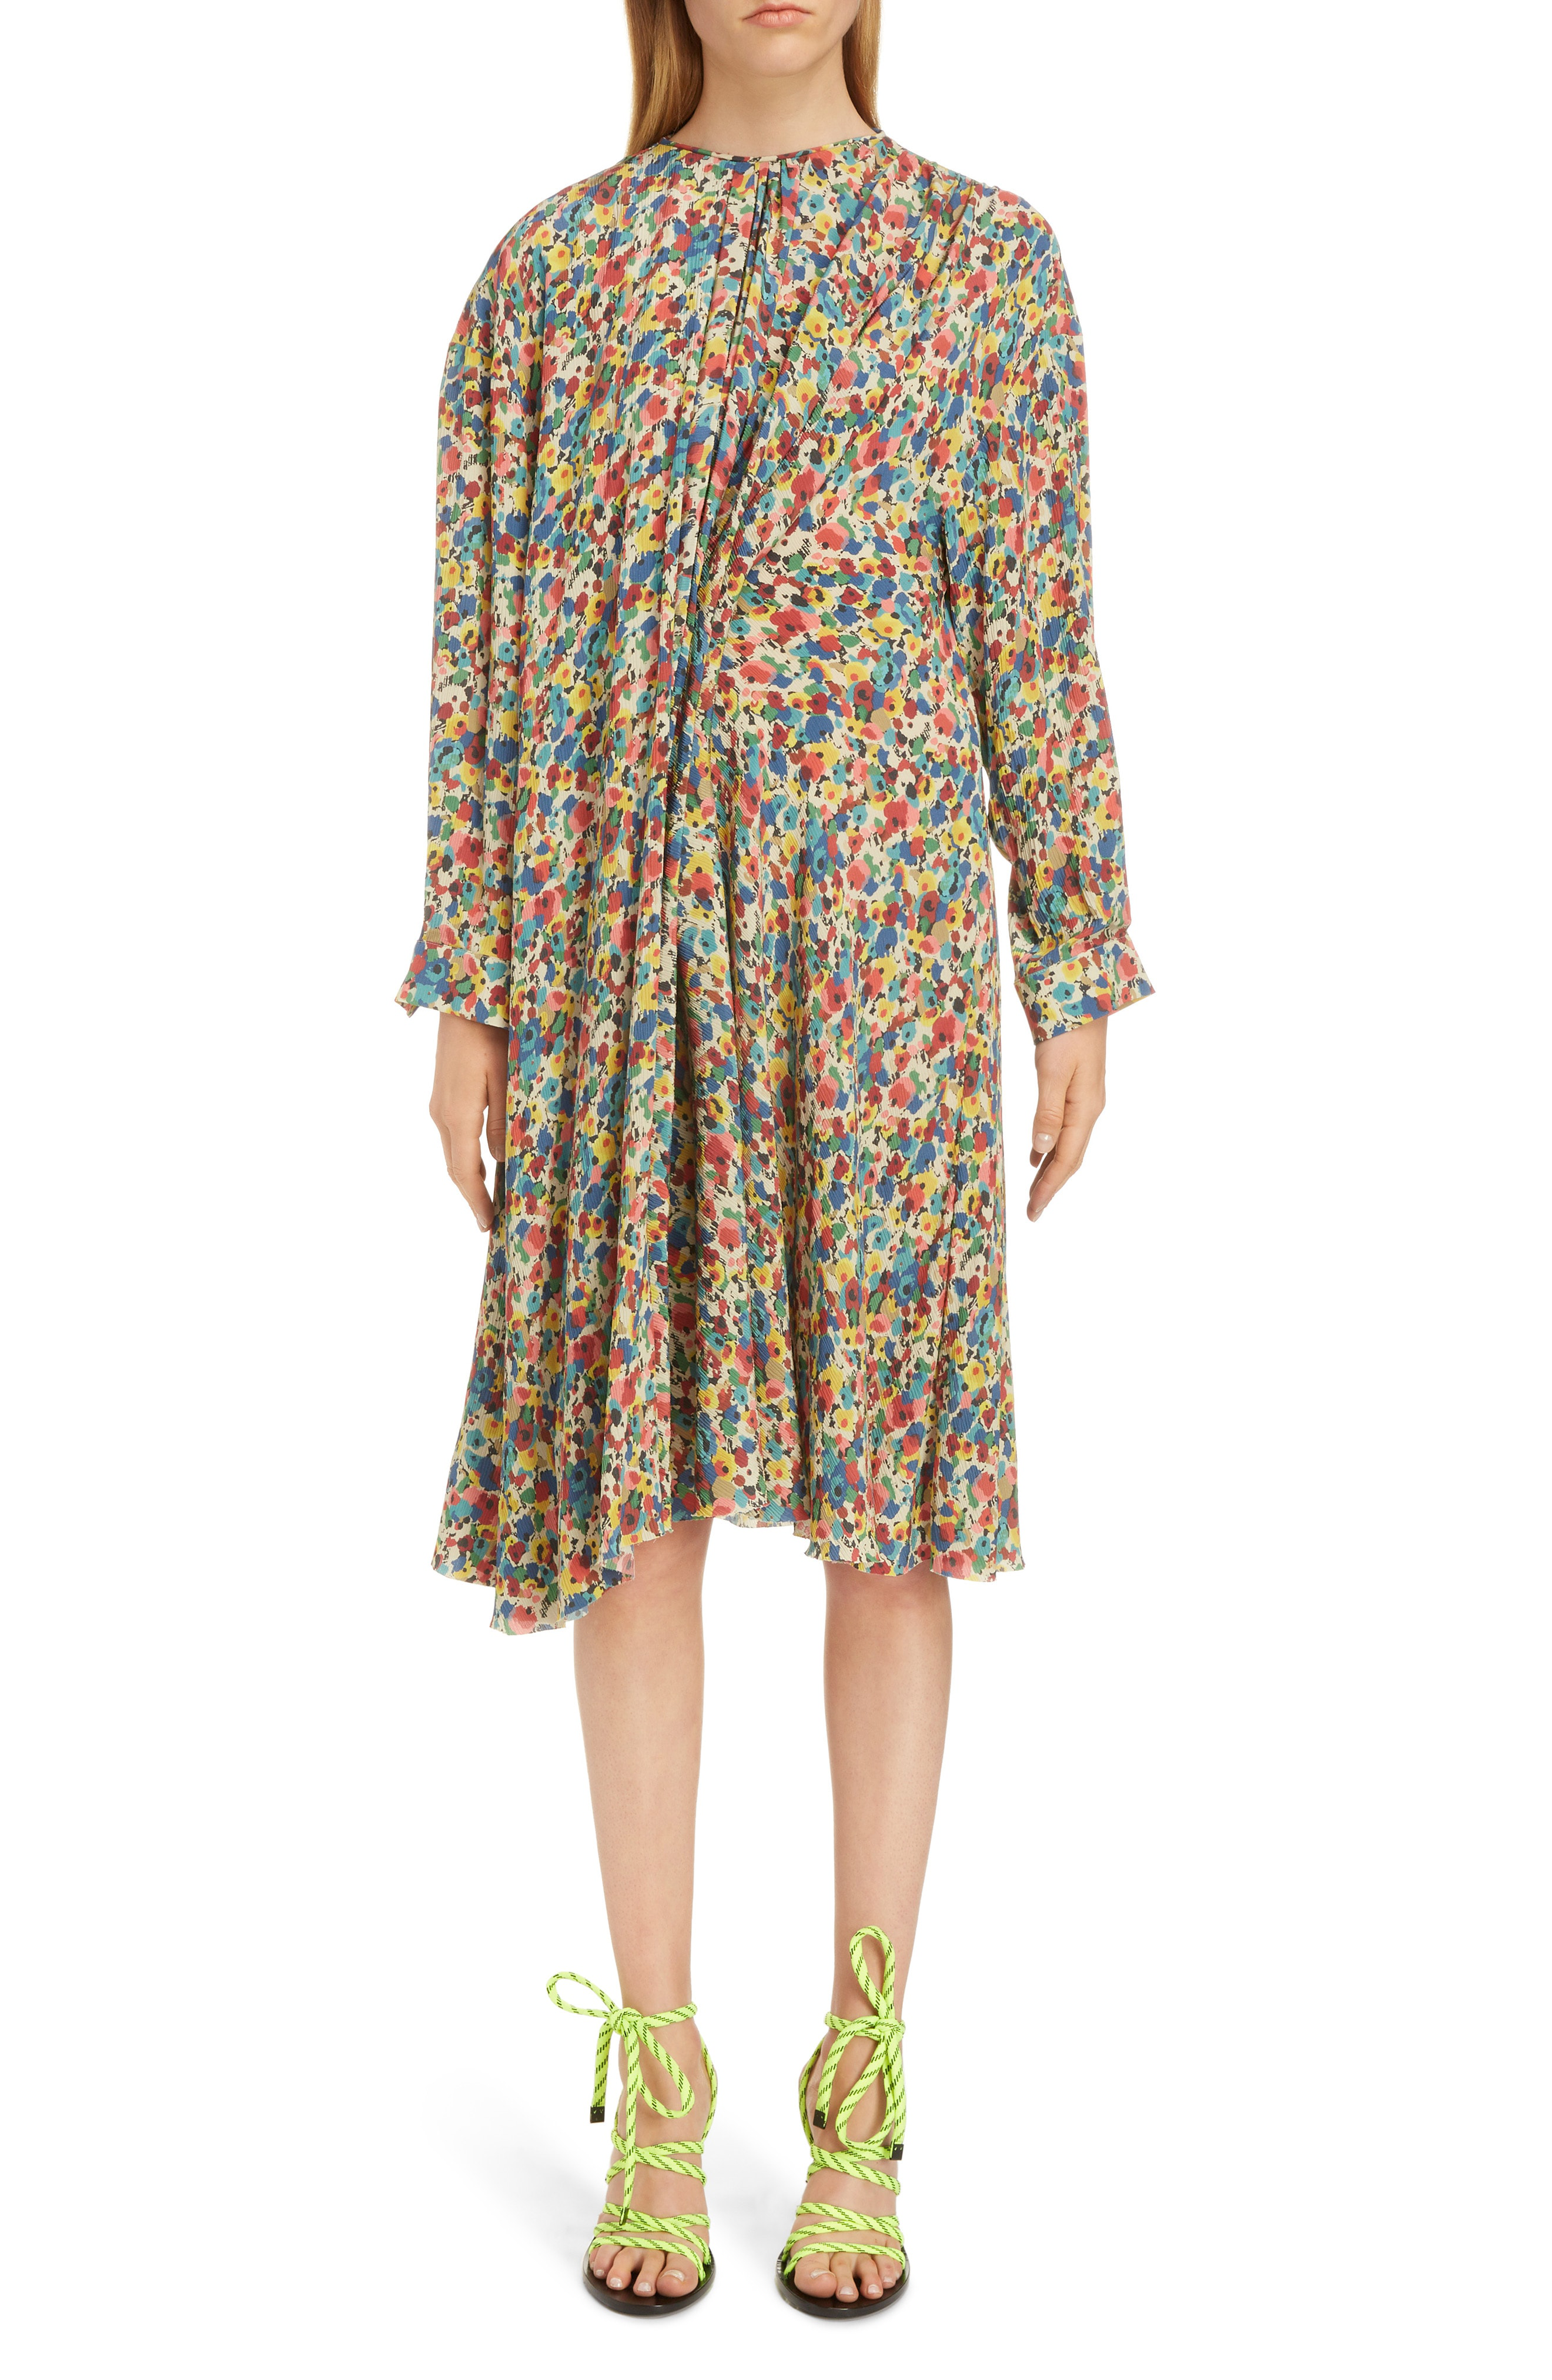 5ba741f5ac02 Balenciaga Floral Print Silk Dress In Multicolor